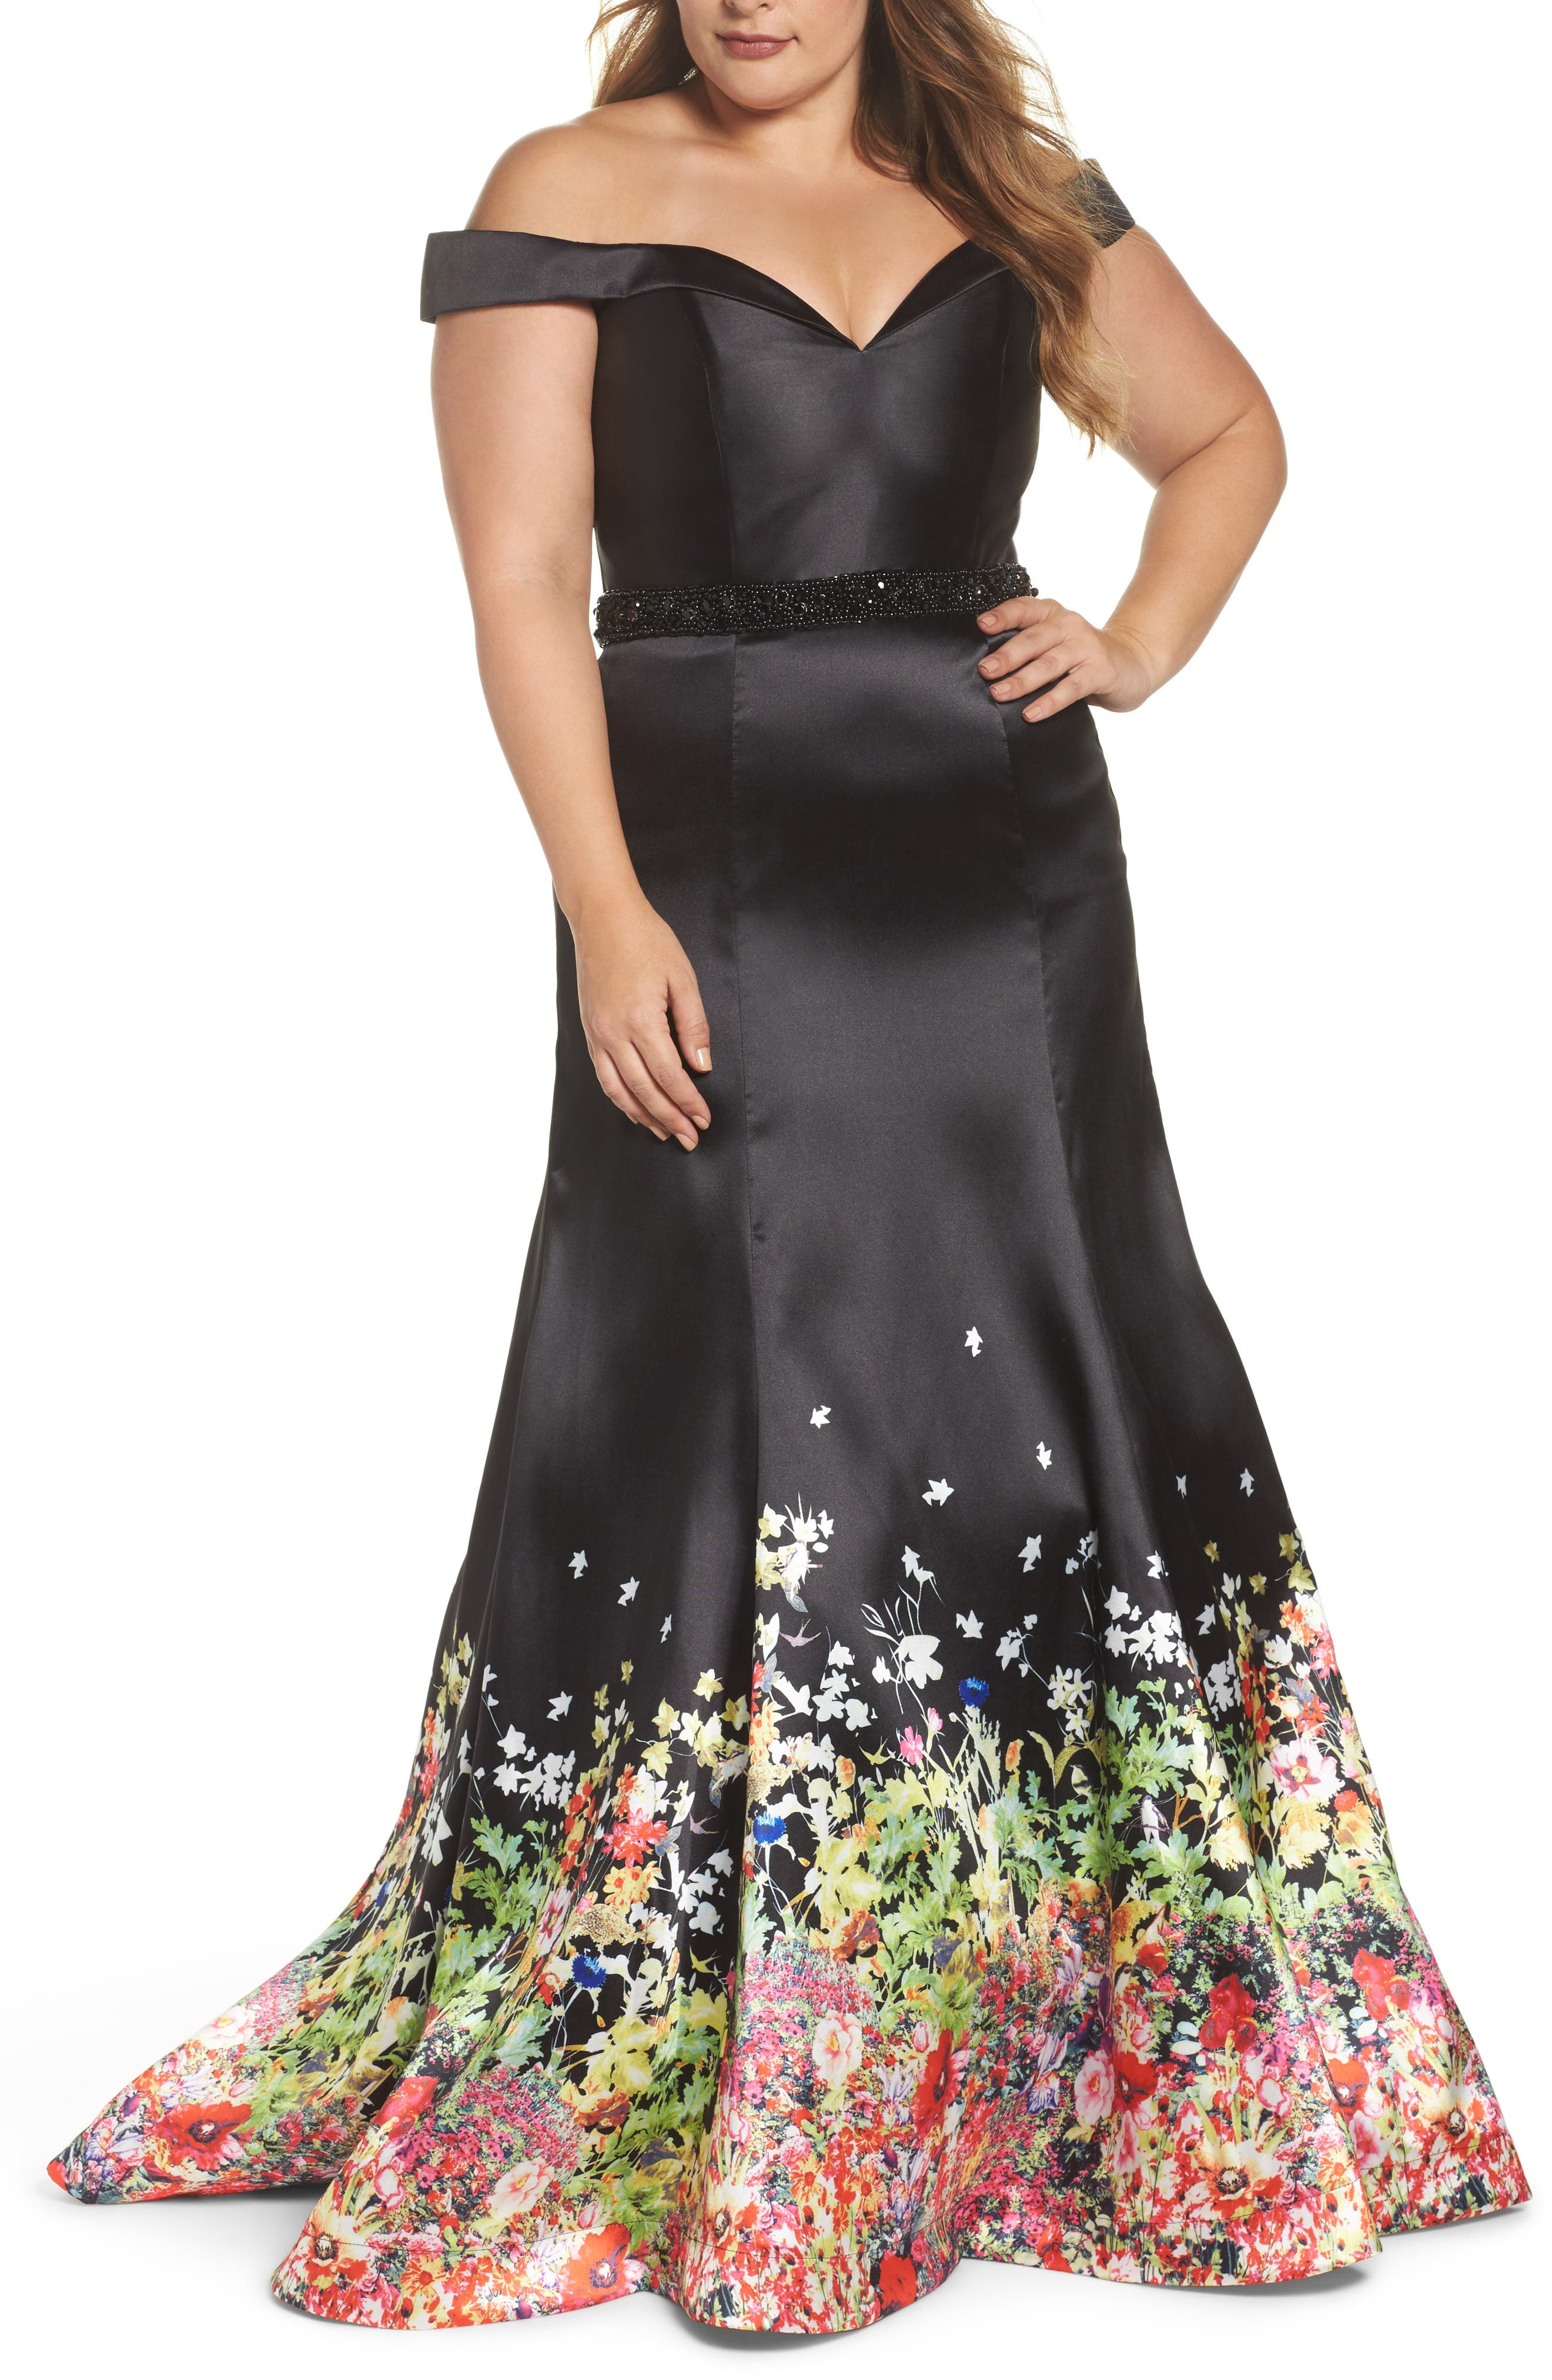 MAC DUGGAL, Beaded Waist Off the Shoulder Gown, Main thumbnail 1, color, BLACK/ MULTI